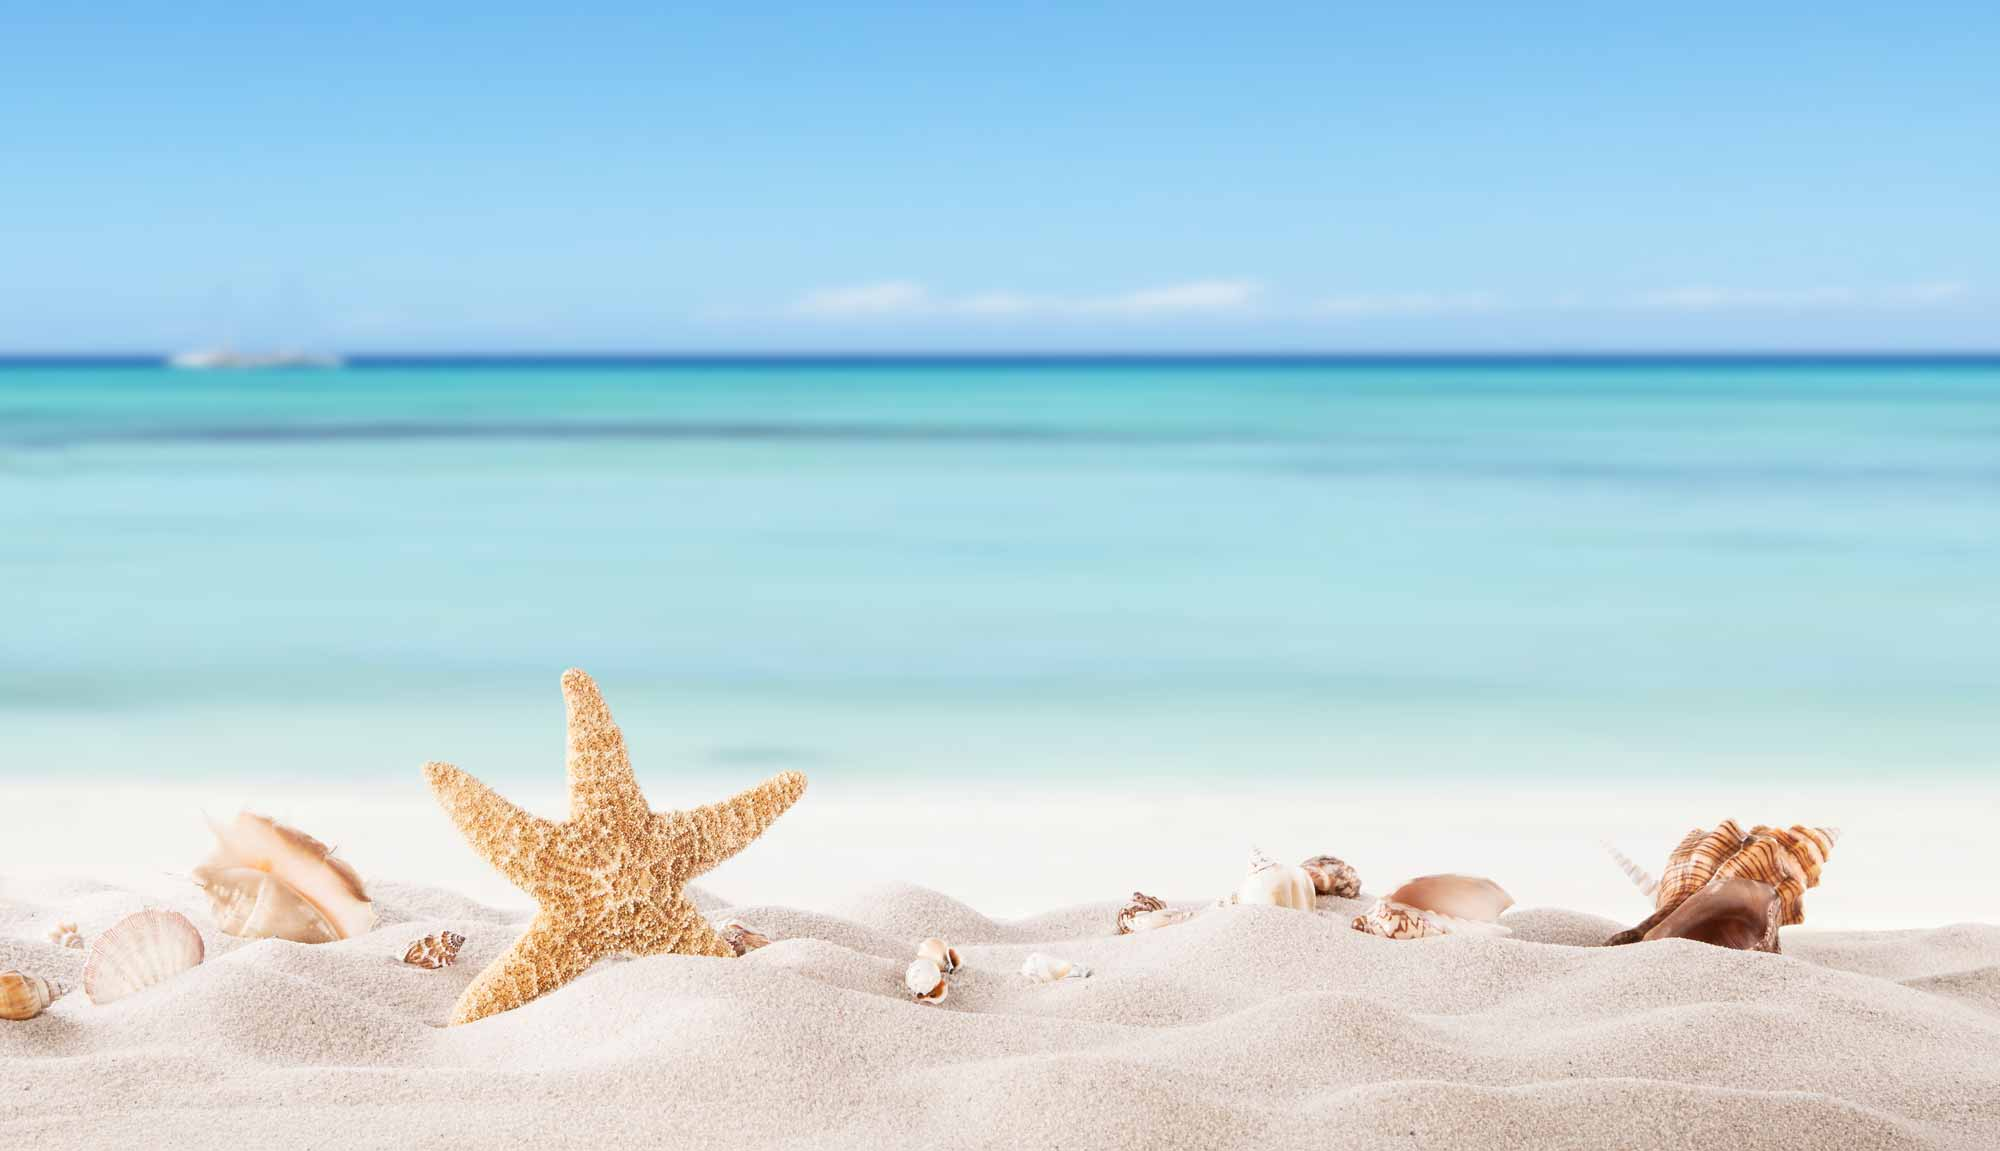 Bright blue sea with a starfish in the sand